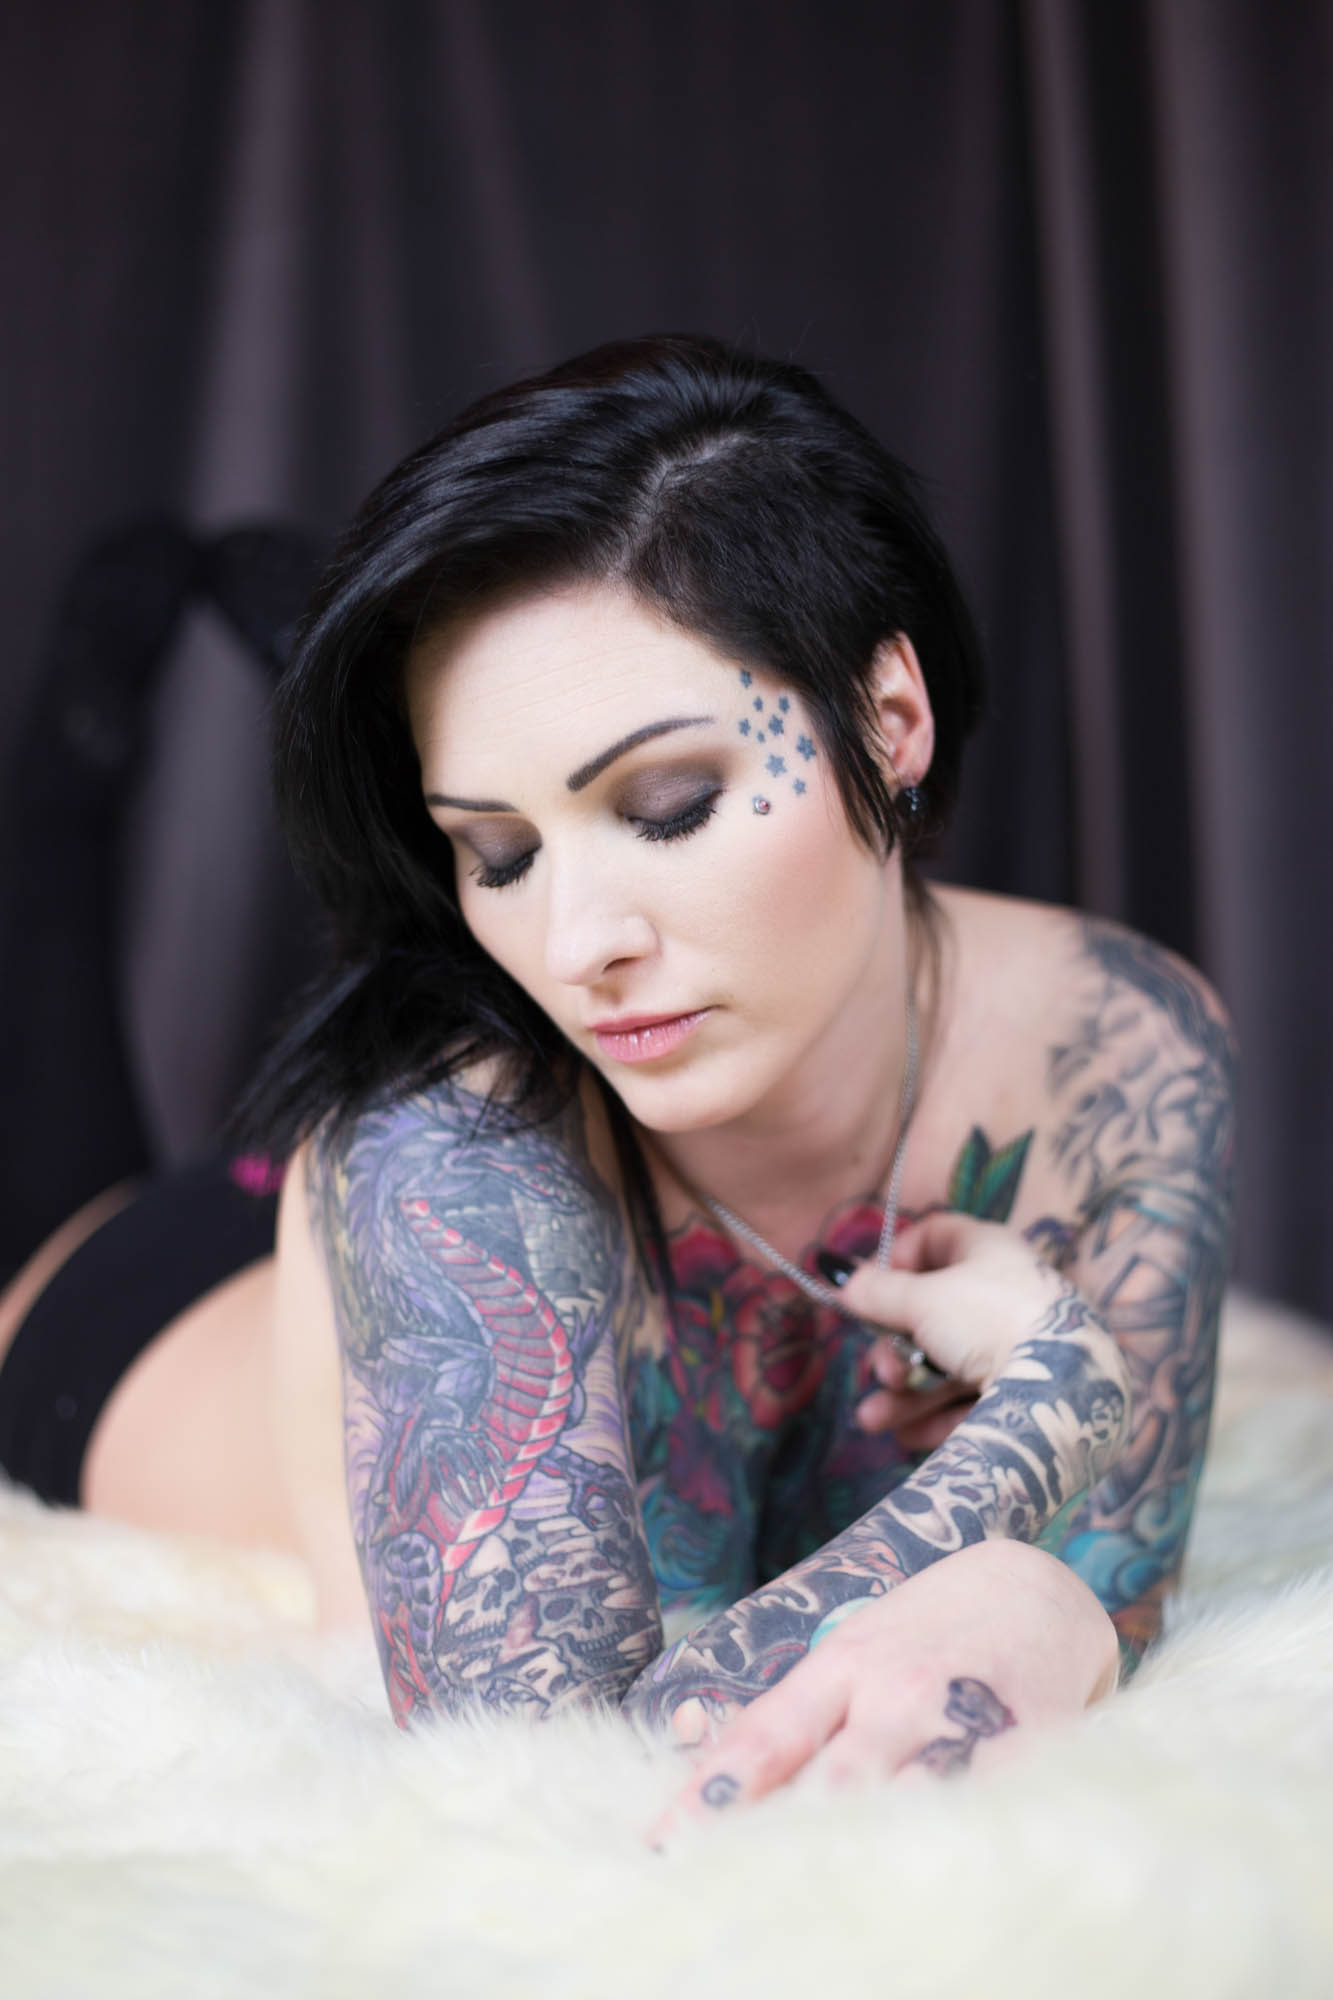 Tattooed Pornstar Catherine Tayler profile